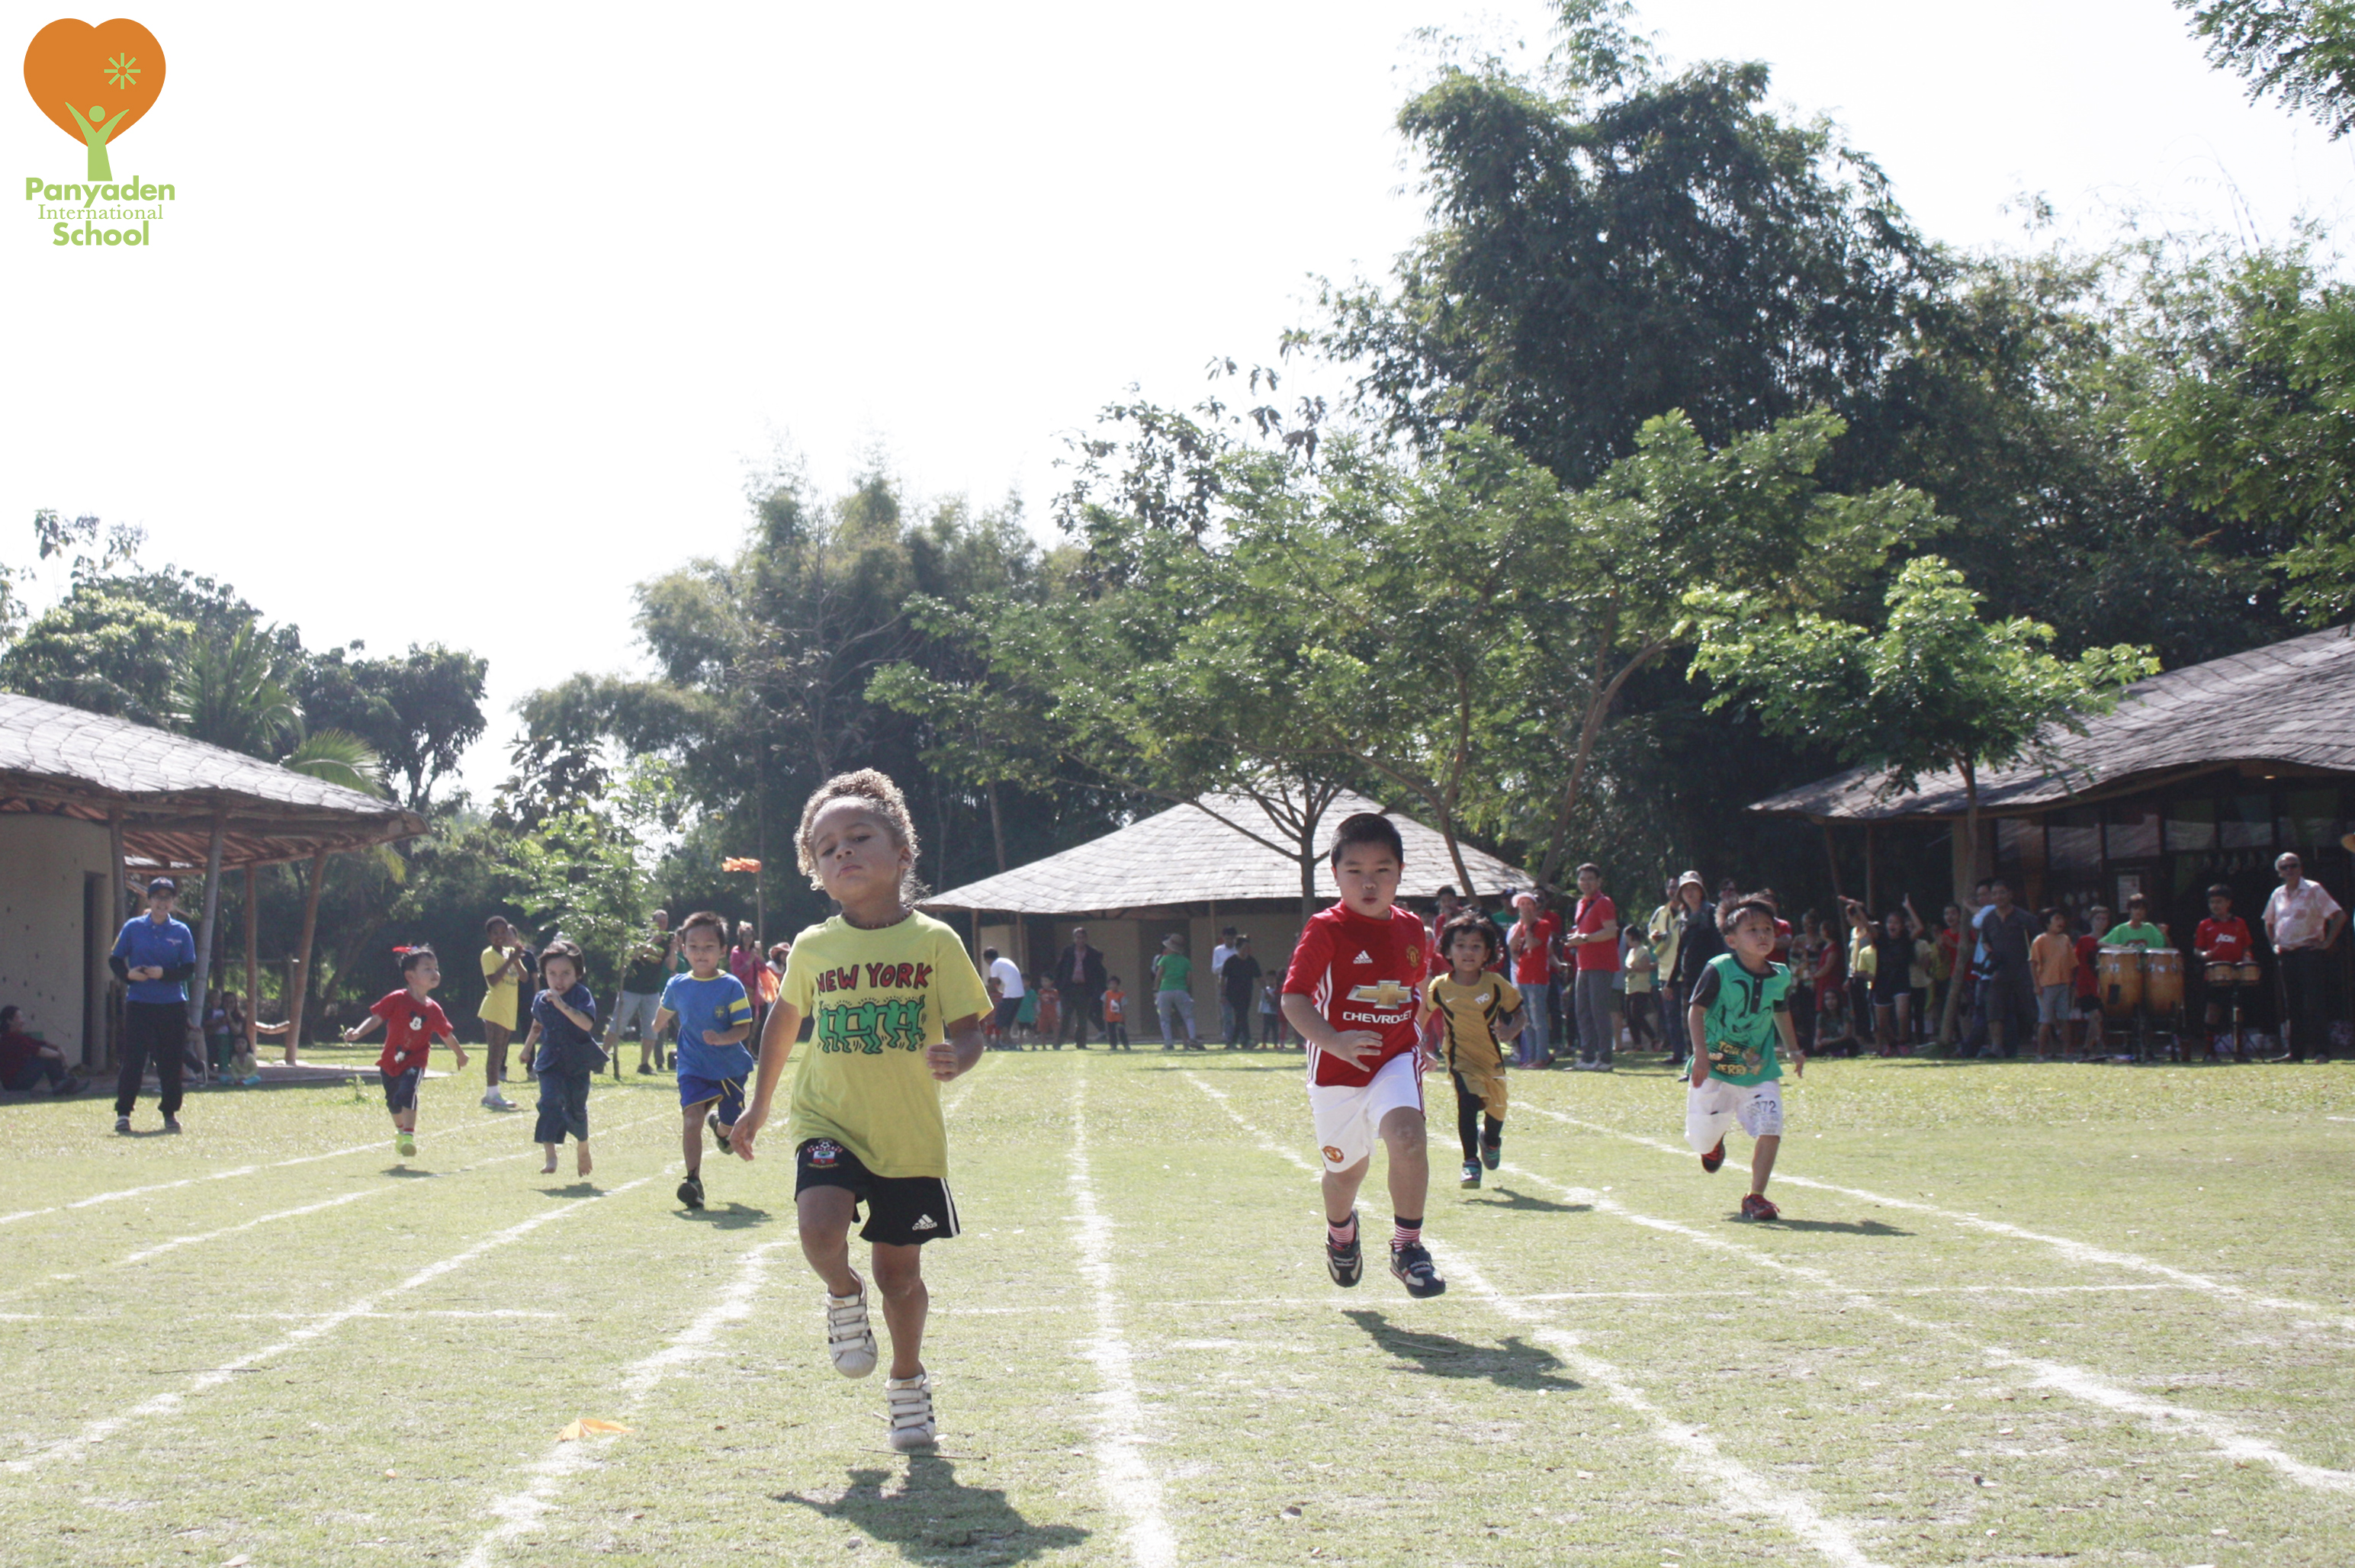 Students focus hard on running during Panyaden Sports Day racerace